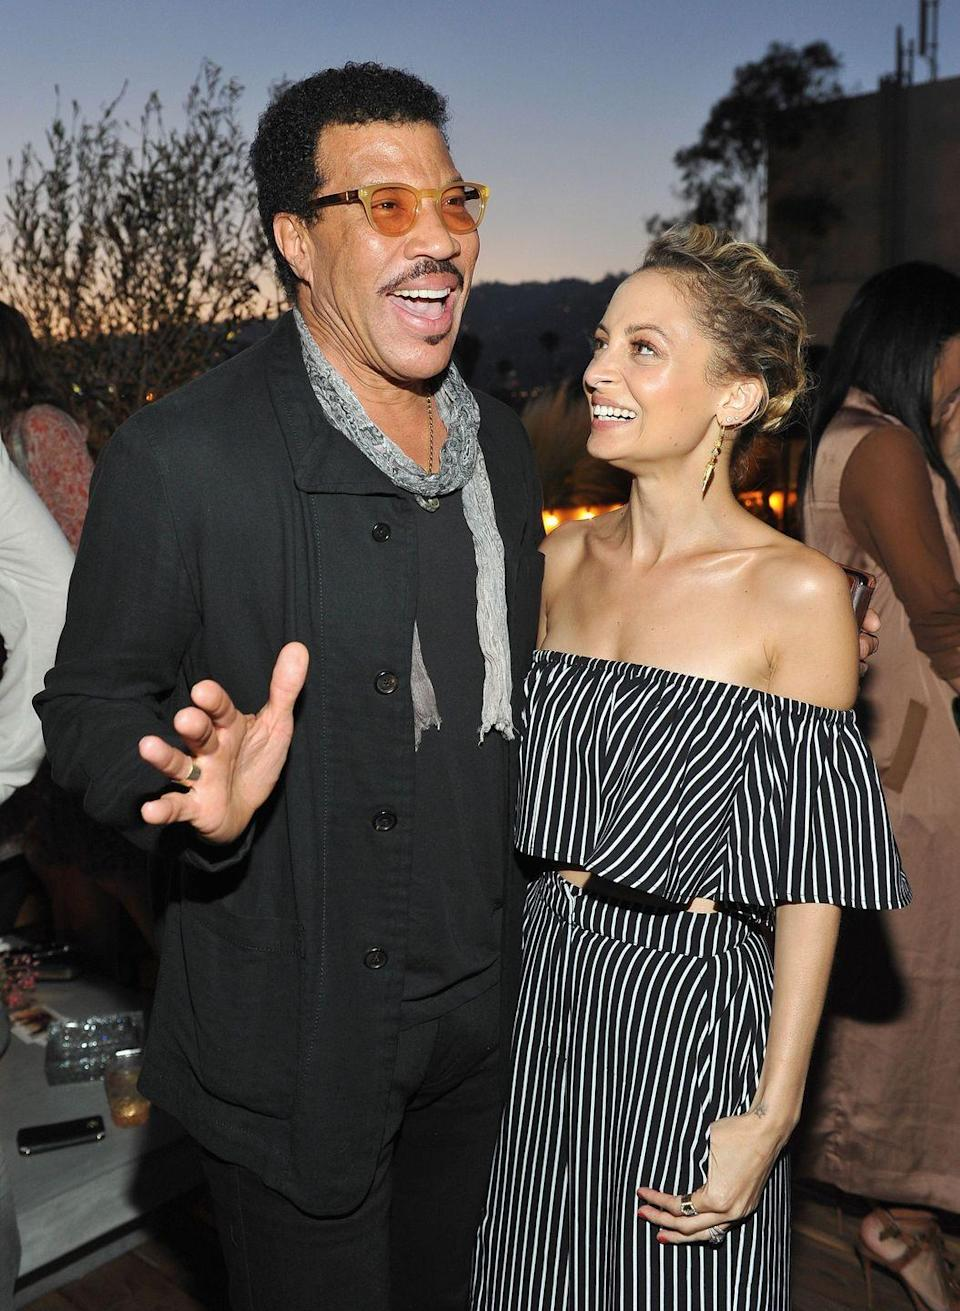 """<p><strong>Famous parent(s)</strong>: singer Lionel Richie<br><strong>What it was like</strong>: """"When your father is Lionel Richie, you grow up with some pretty famous people around the house, like Prince and Michael Jackson,"""" she's <a href=""""http://people.com/celebrity/nicole-richie-on-growing-up-with-uncle-michael-jackson-and-uncle-prince/"""" rel=""""nofollow noopener"""" target=""""_blank"""" data-ylk=""""slk:said"""" class=""""link rapid-noclick-resp"""">said</a>. """"From what I remember it was pretty normal for me. There were a lot of people around is what I do remember. There were people in and out of the house pretty you know much all the time, but now that I'm older and I'm in this business I get it.""""</p>"""